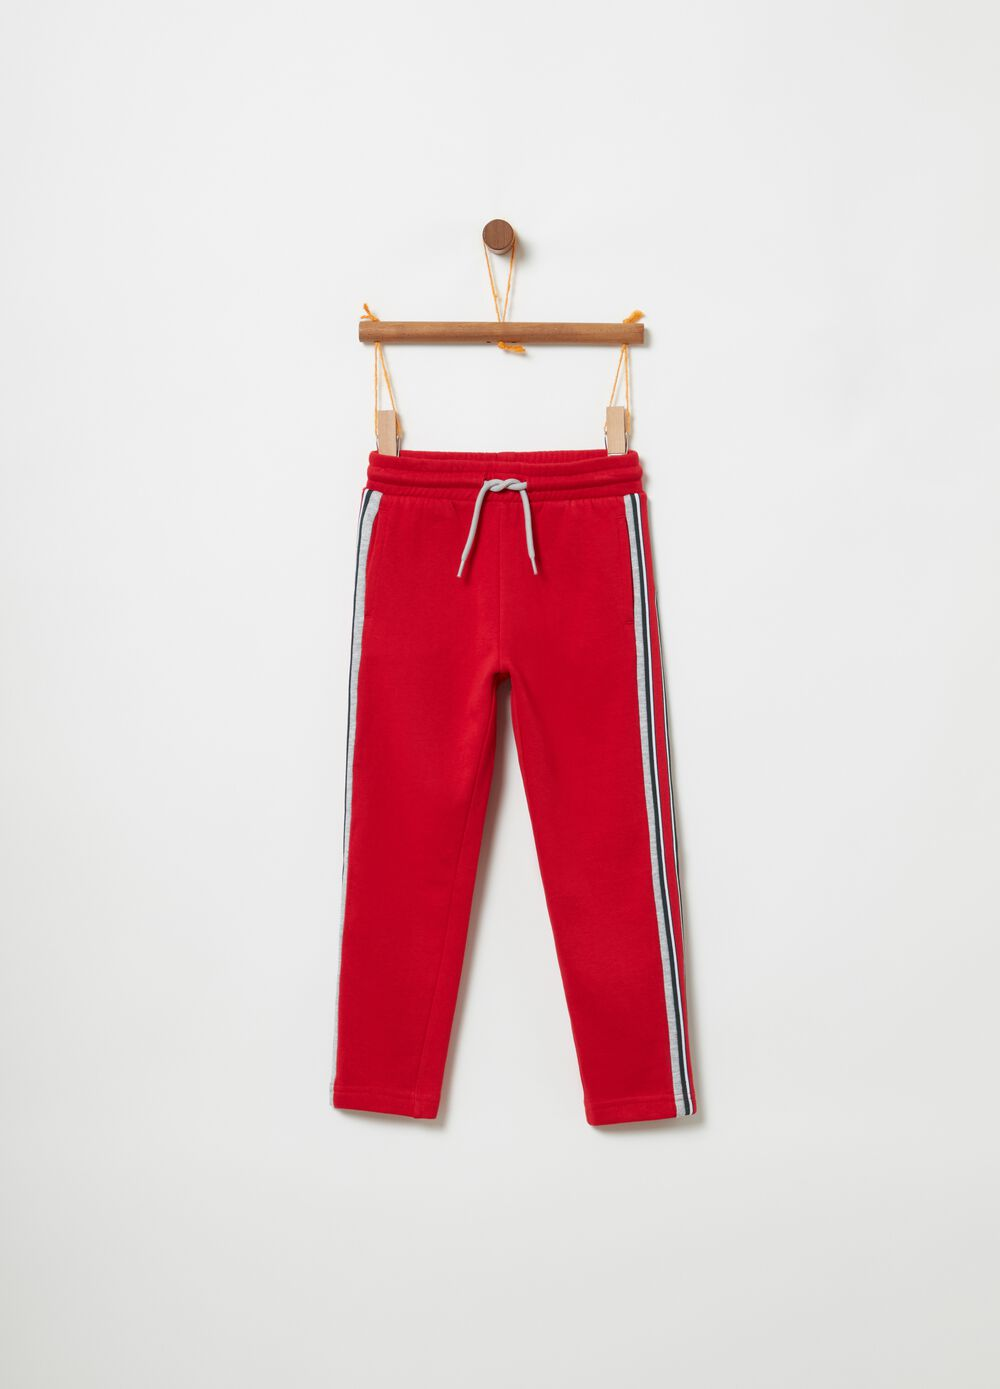 Trousers in 100% cotton with drawstring